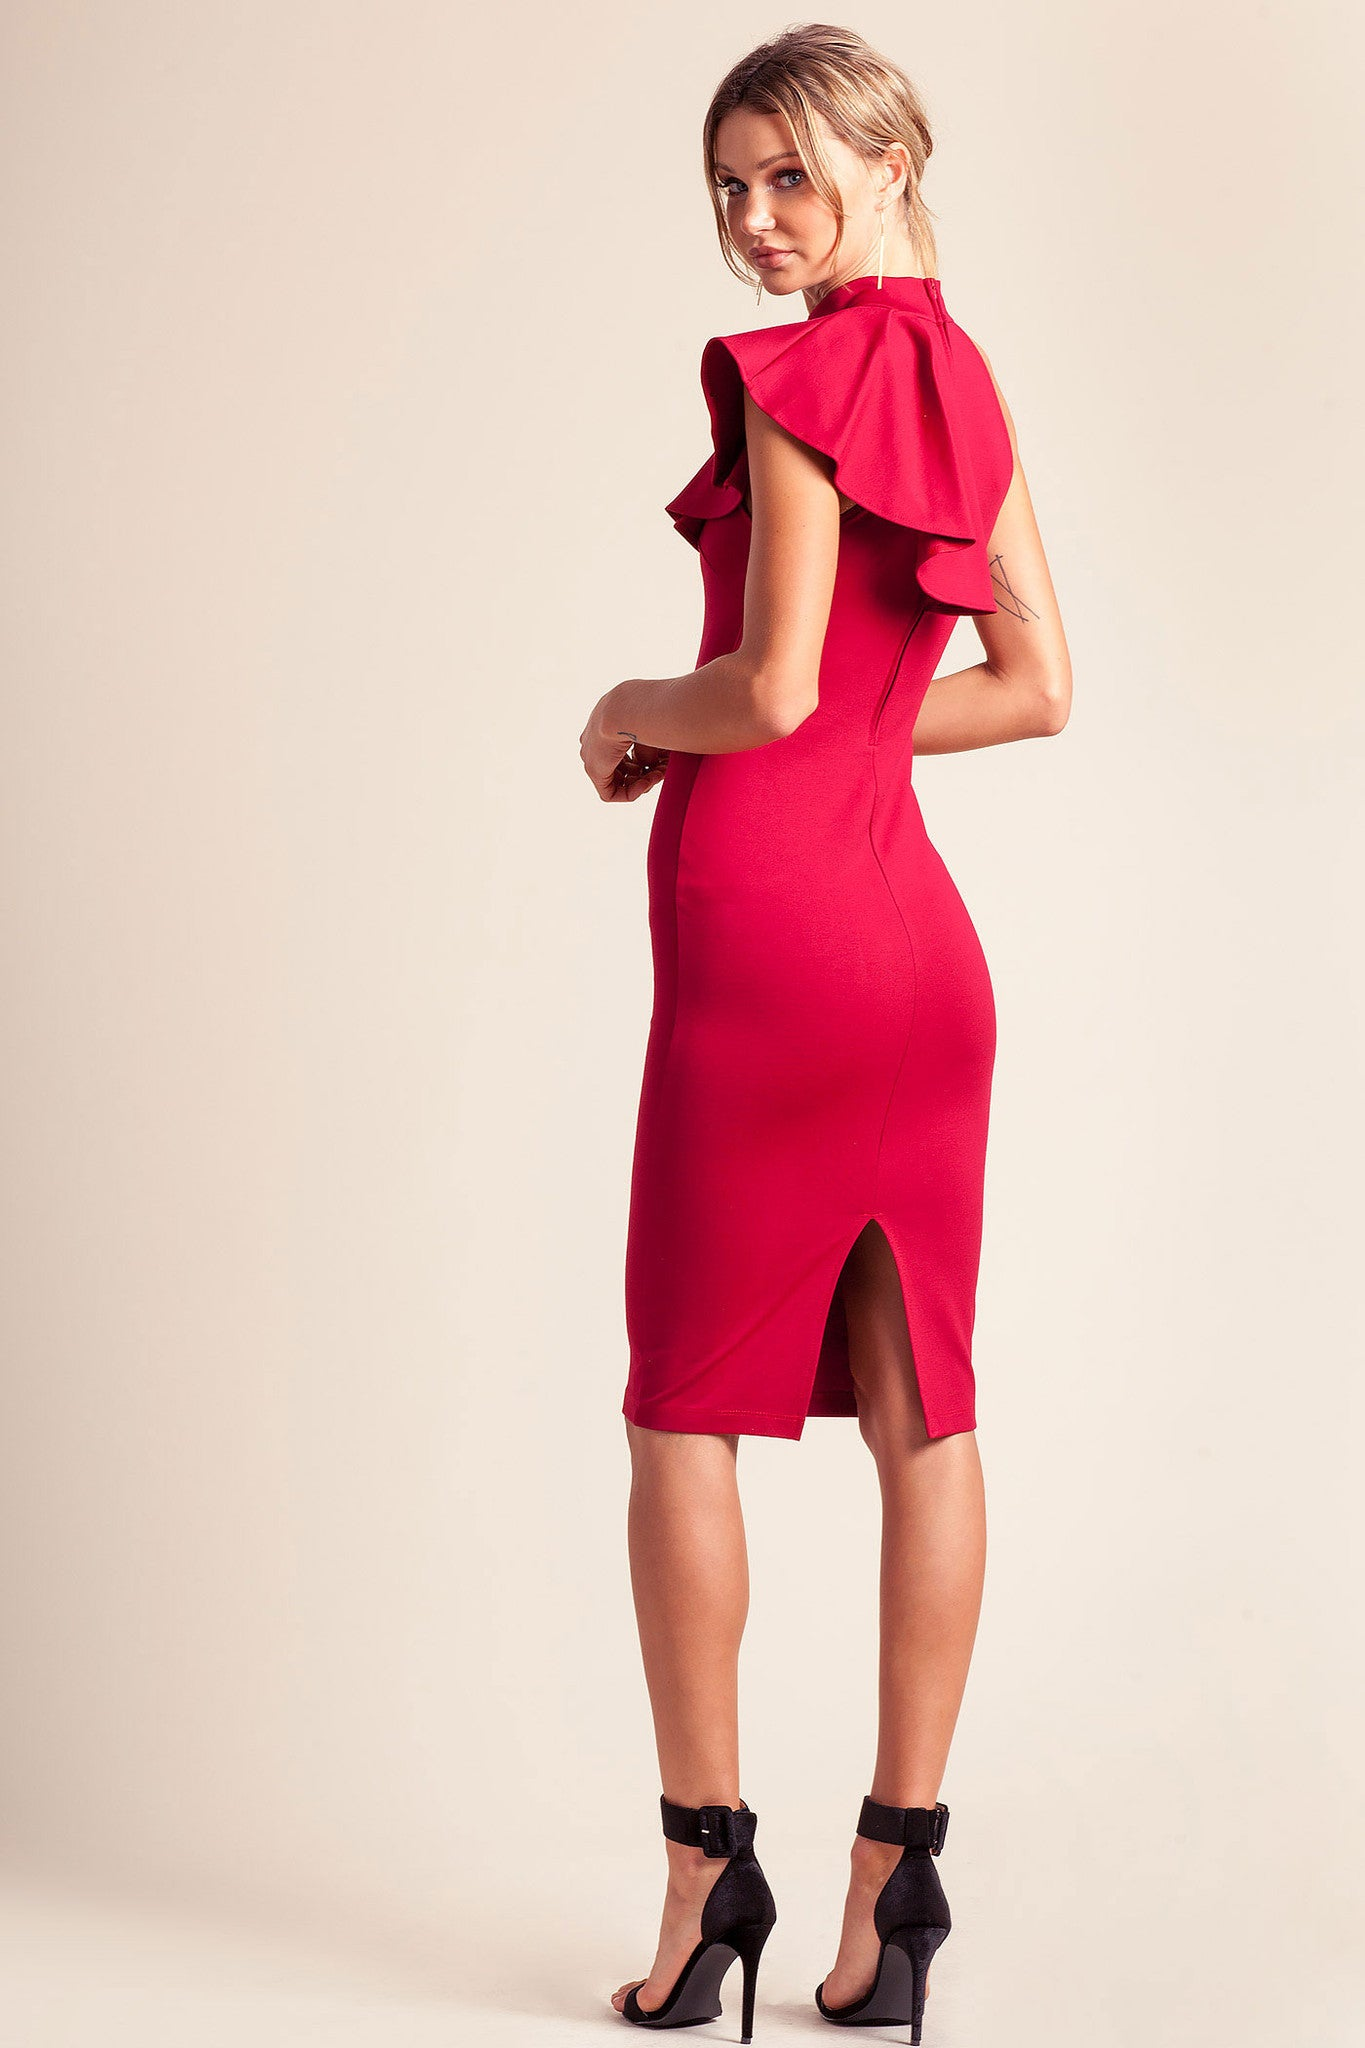 Estella Red Cocktail Dress